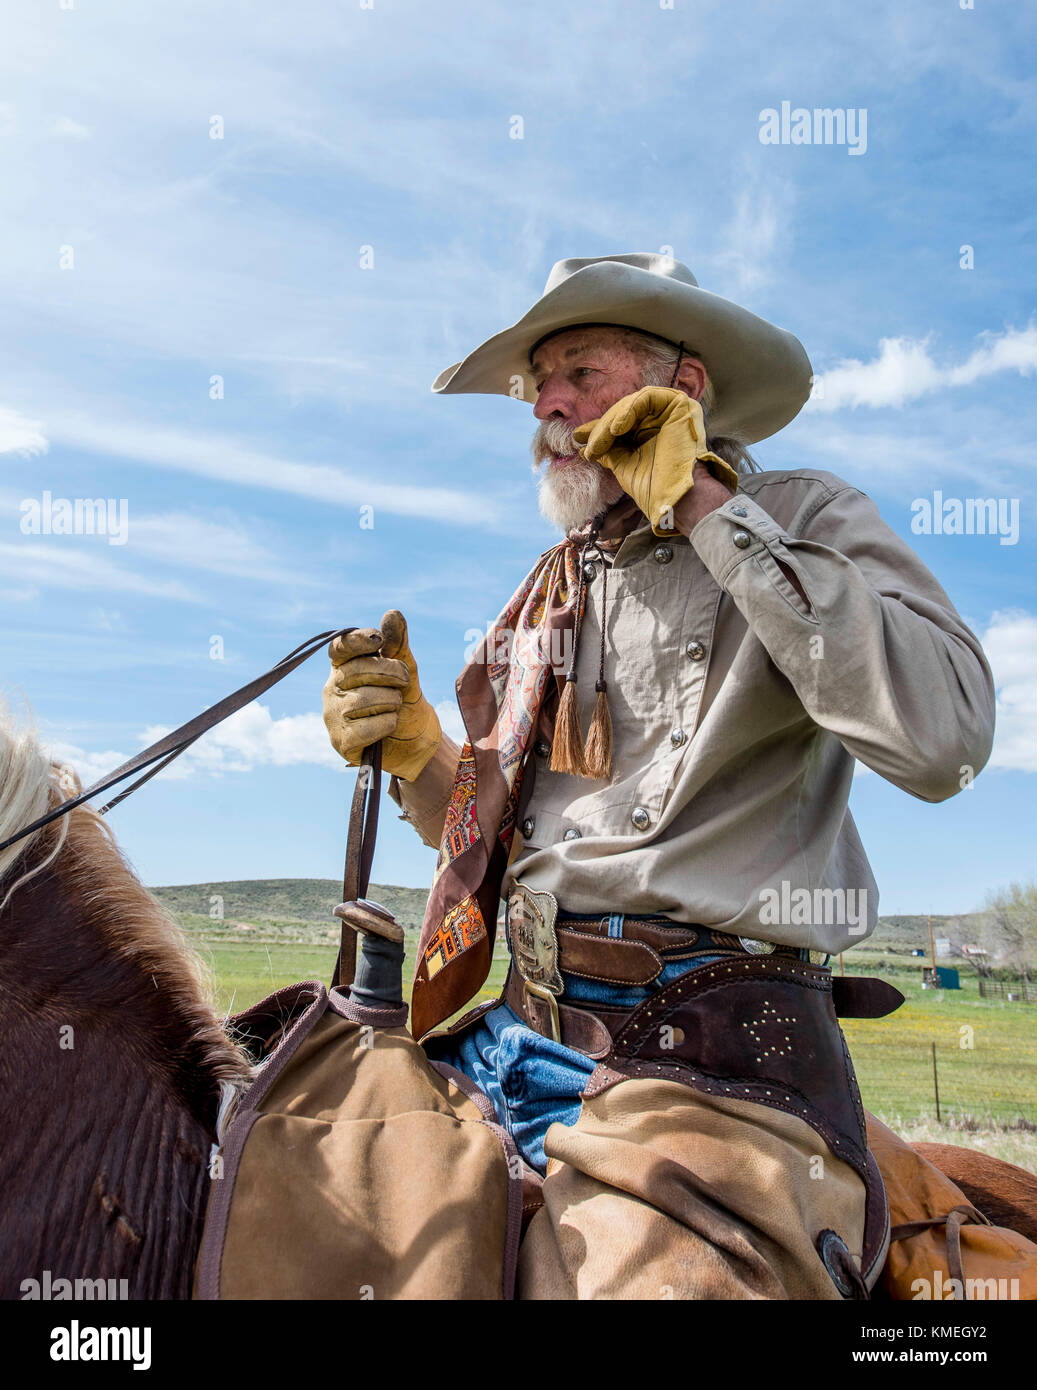 Old West Cowboy Stock Photos Amp Old West Cowboy Stock